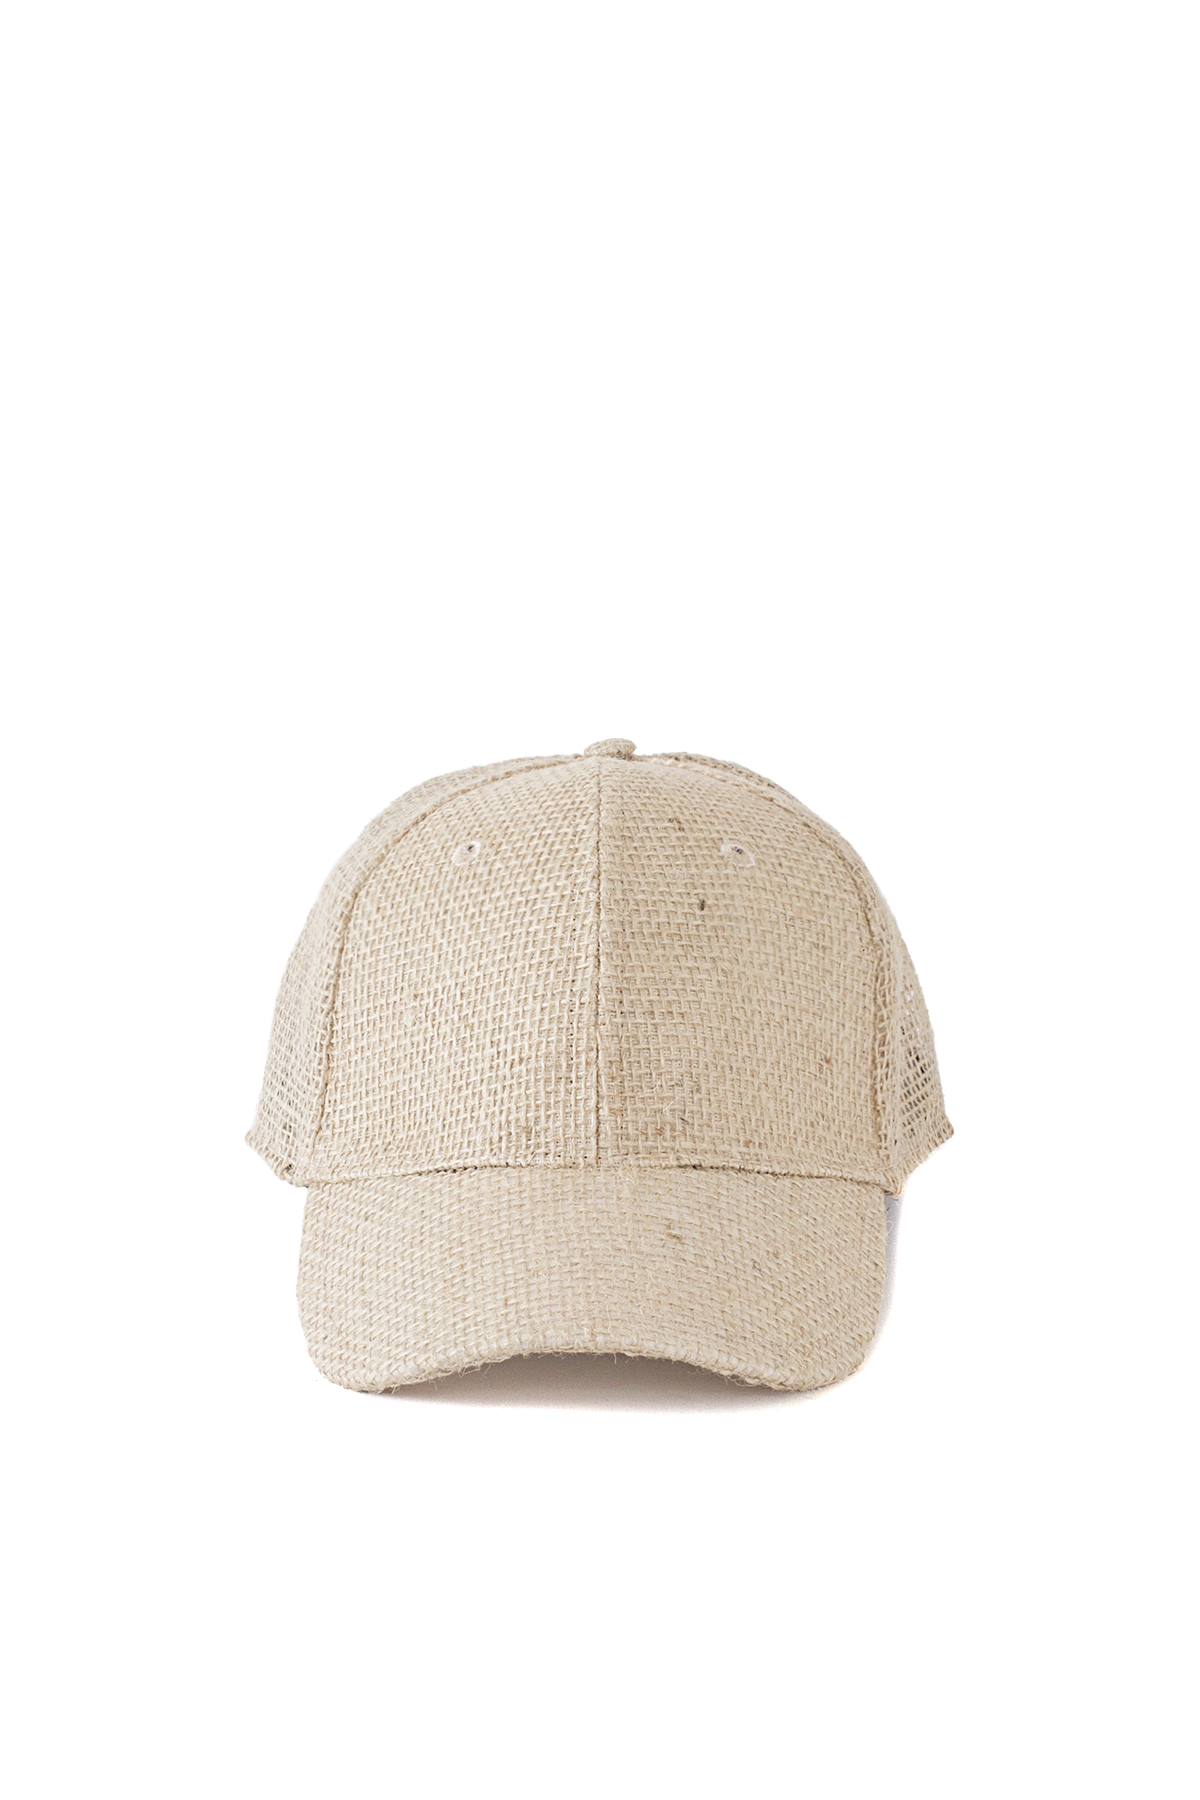 OVERHEAD : Net 6 Panel Cap